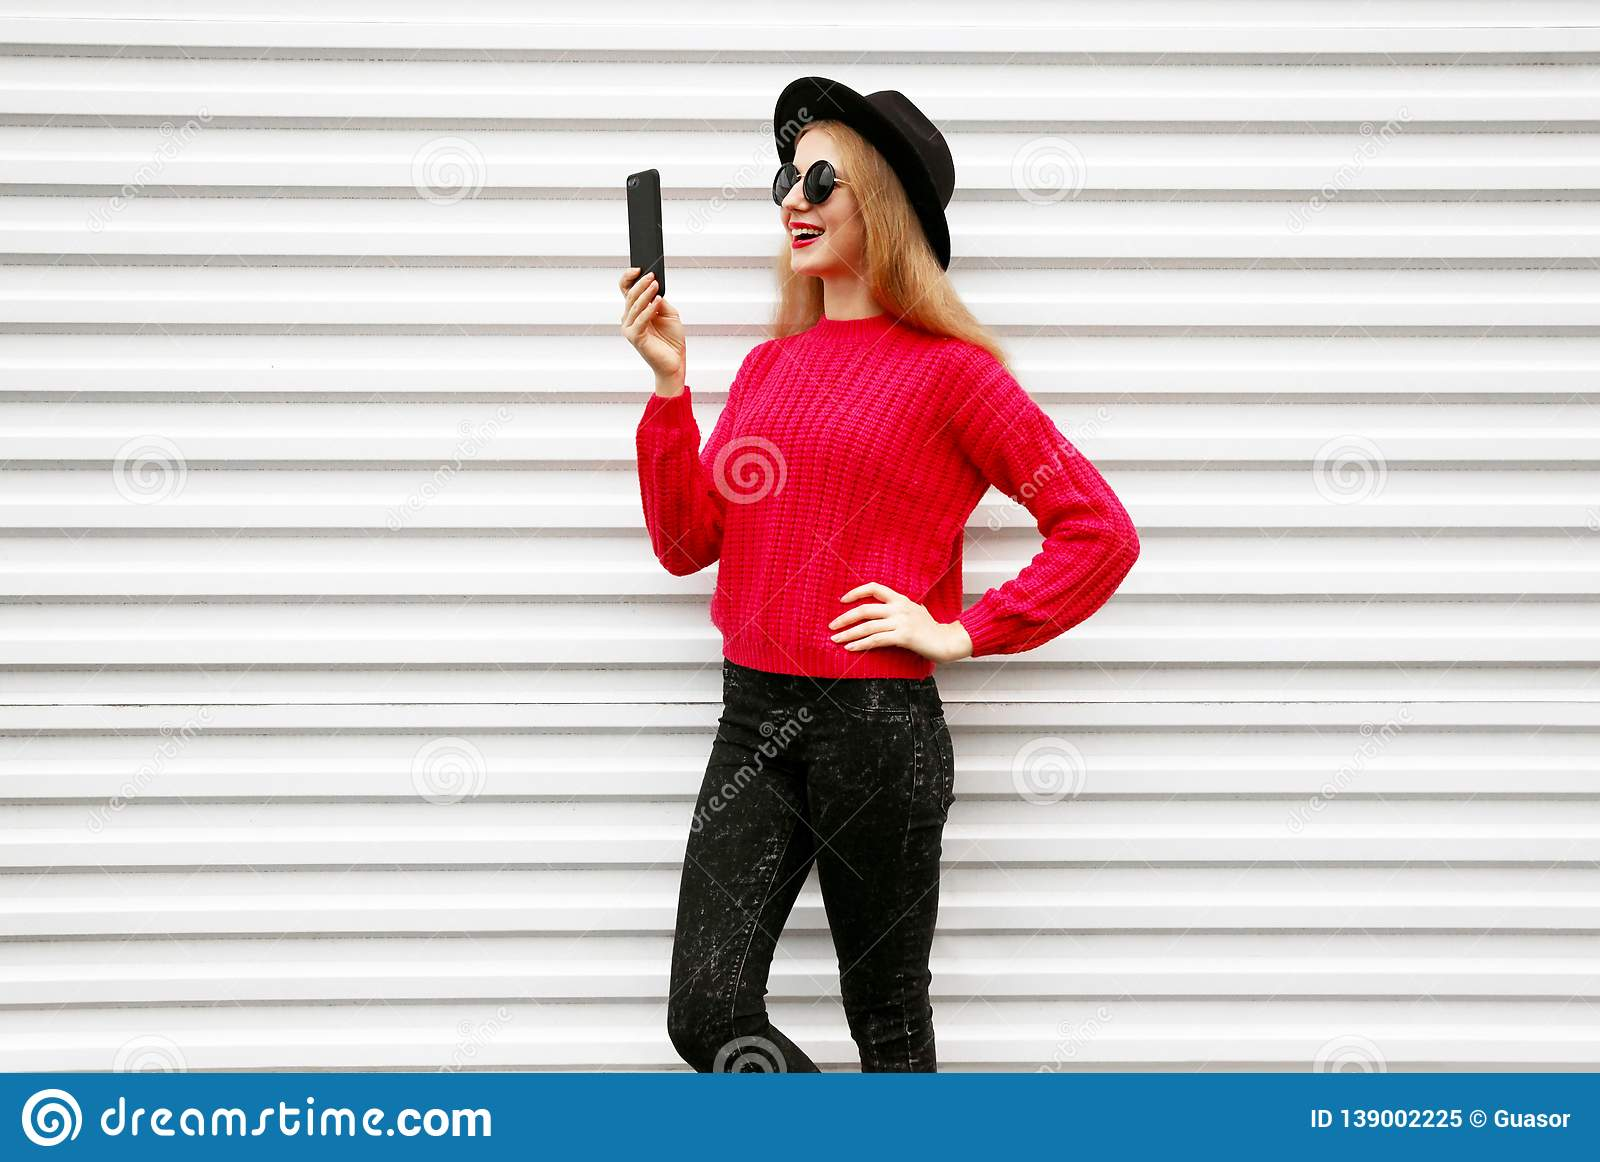 Happy smiling woman holding smartphone in colorful pink knitted sweater on city white wall